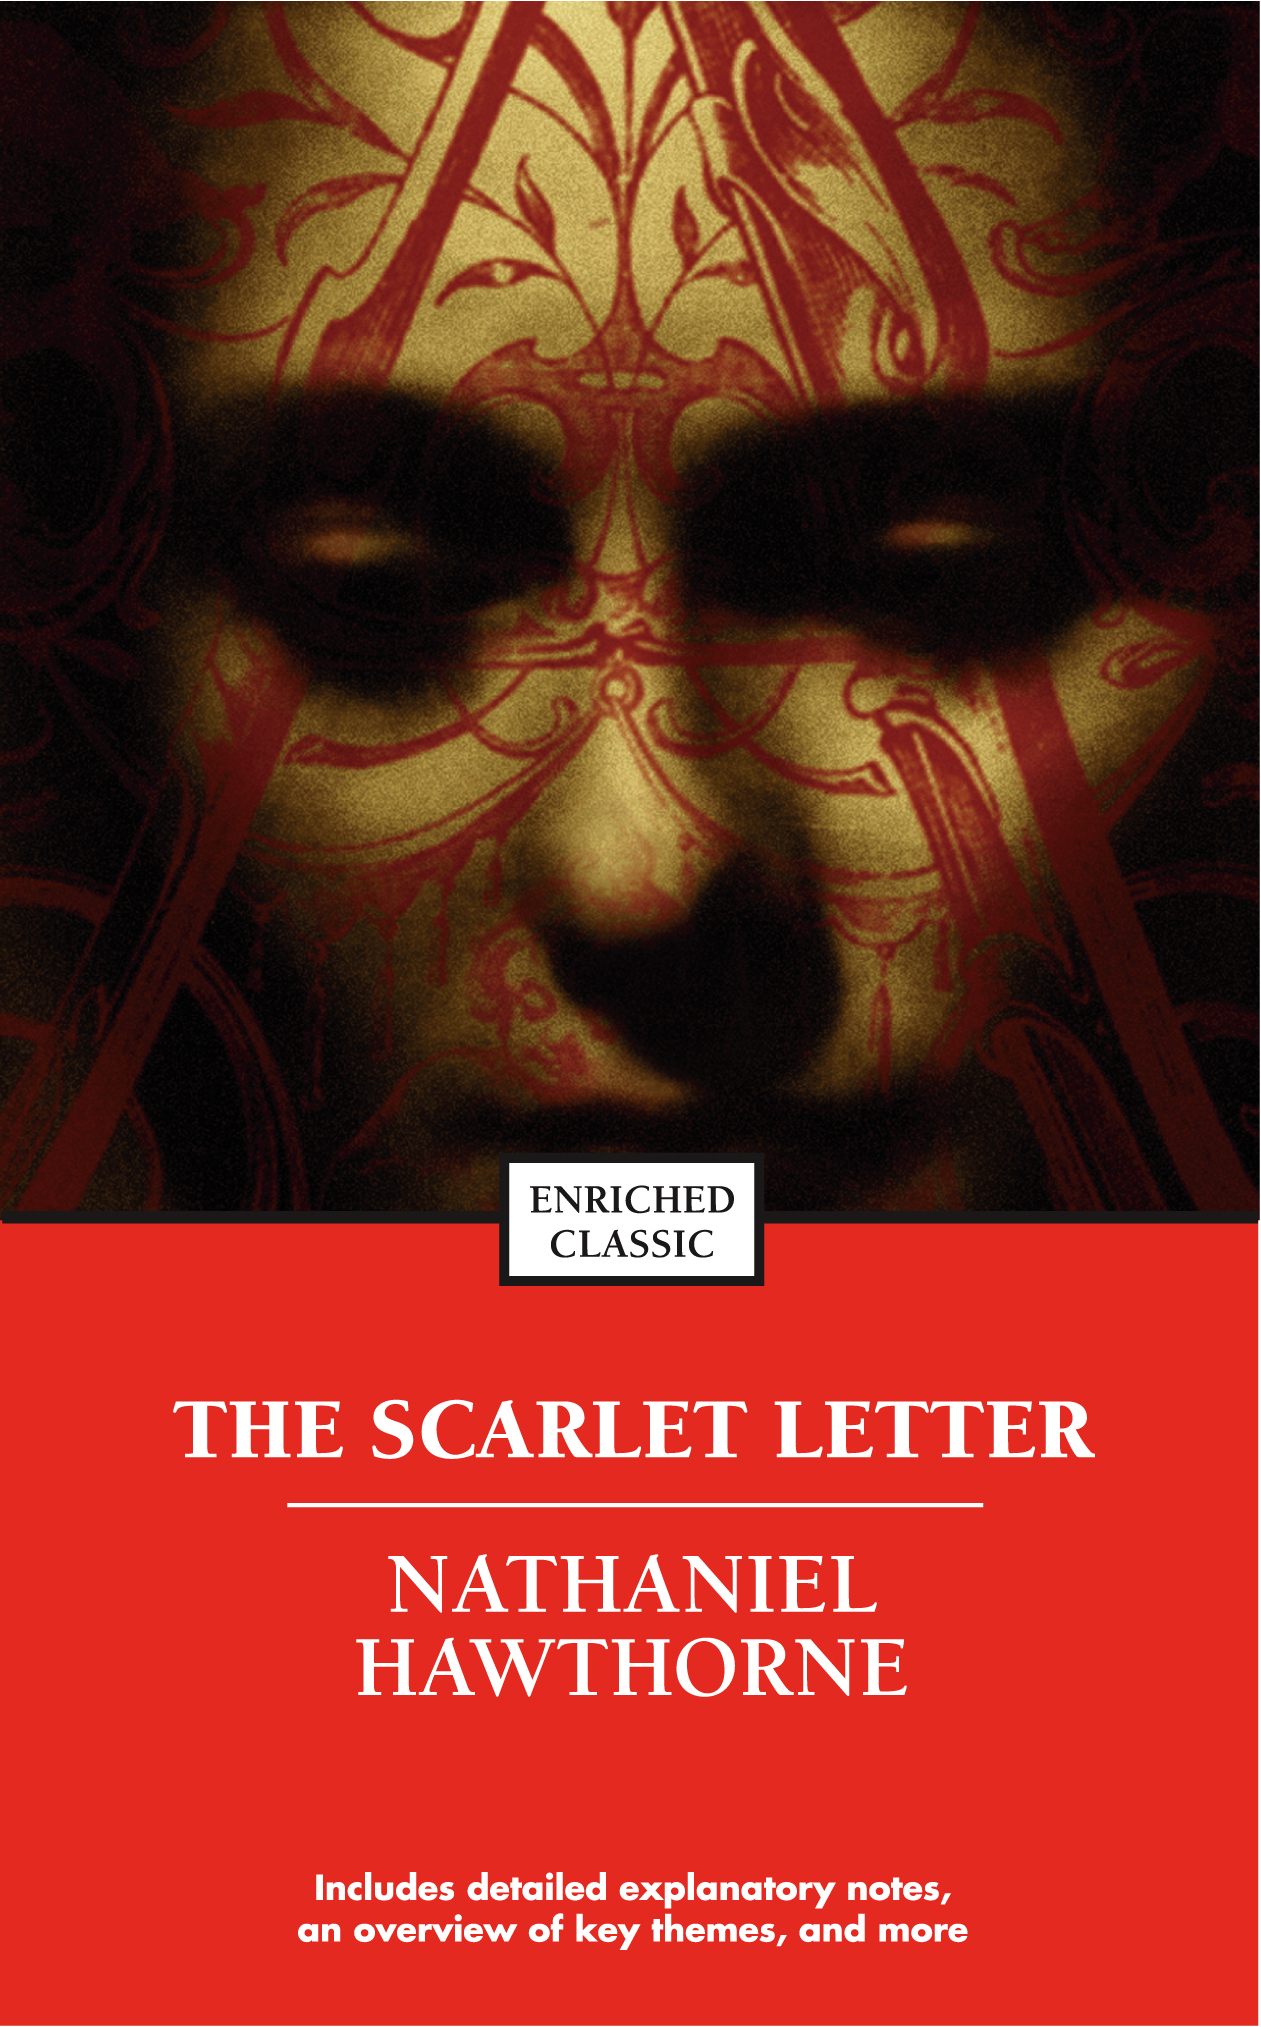 an analysis of the symbols in the setting of the scarlet letter a novel by nathaniel hawthorne Need help on symbols in nathaniel hawthorne's the scarlet letter check out our detailed analysis from the creators of sparknotes.